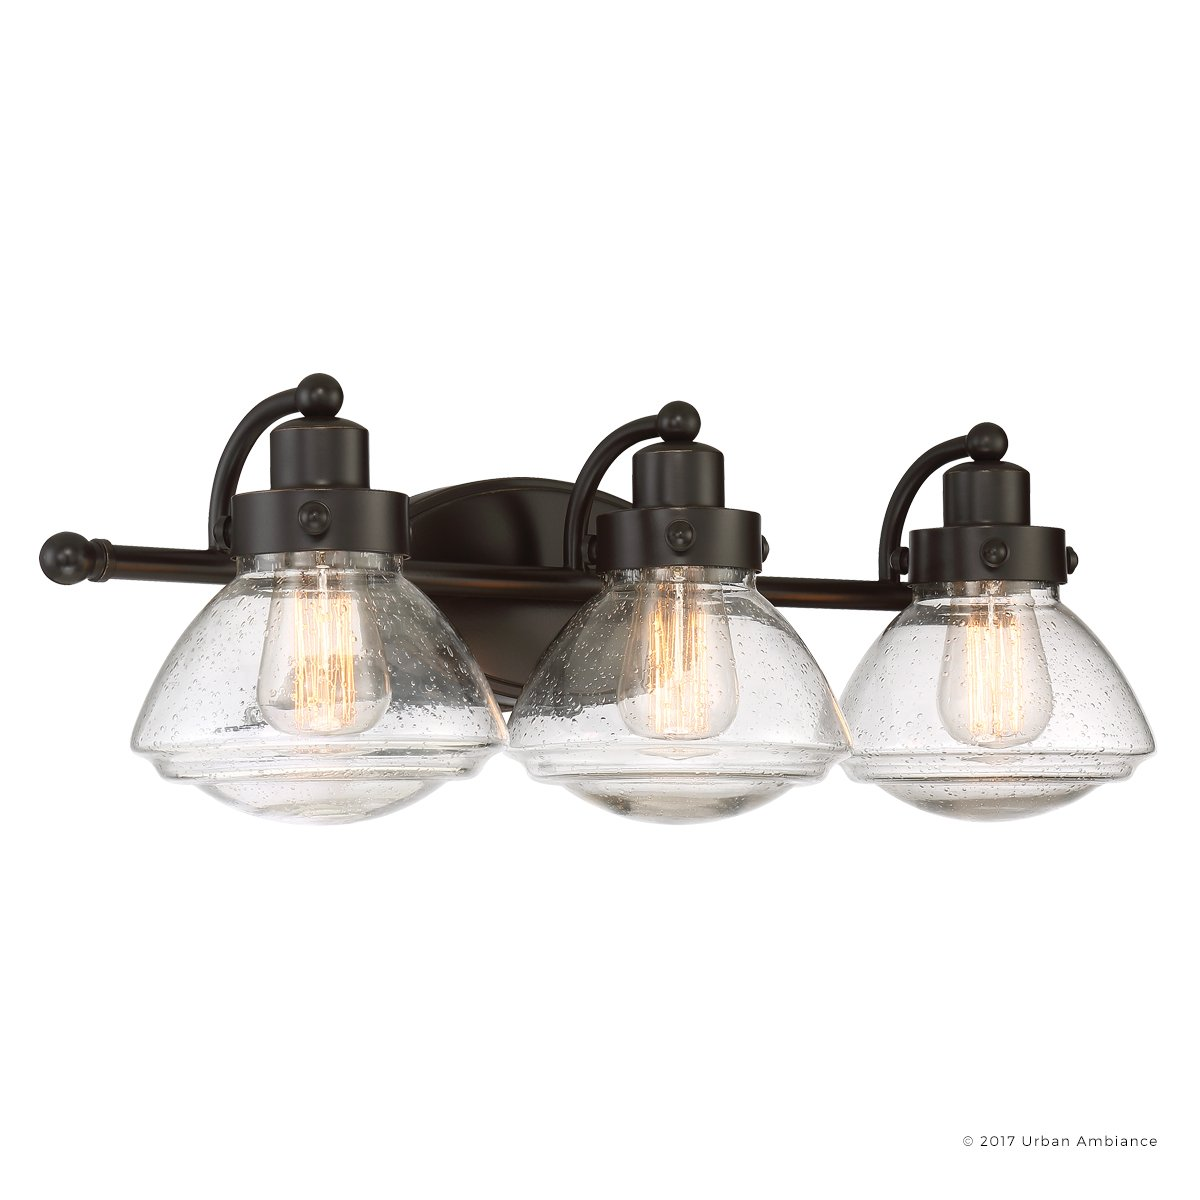 Luxury Transitional Bathroom Vanity Light, Medium Size: 8''H x 25''W, with Rustic Style Elements, Oil Rubbed Parisian Bronze Finish and Seeded Schoolhouse Glass, UQL2652 by Urban Ambiance